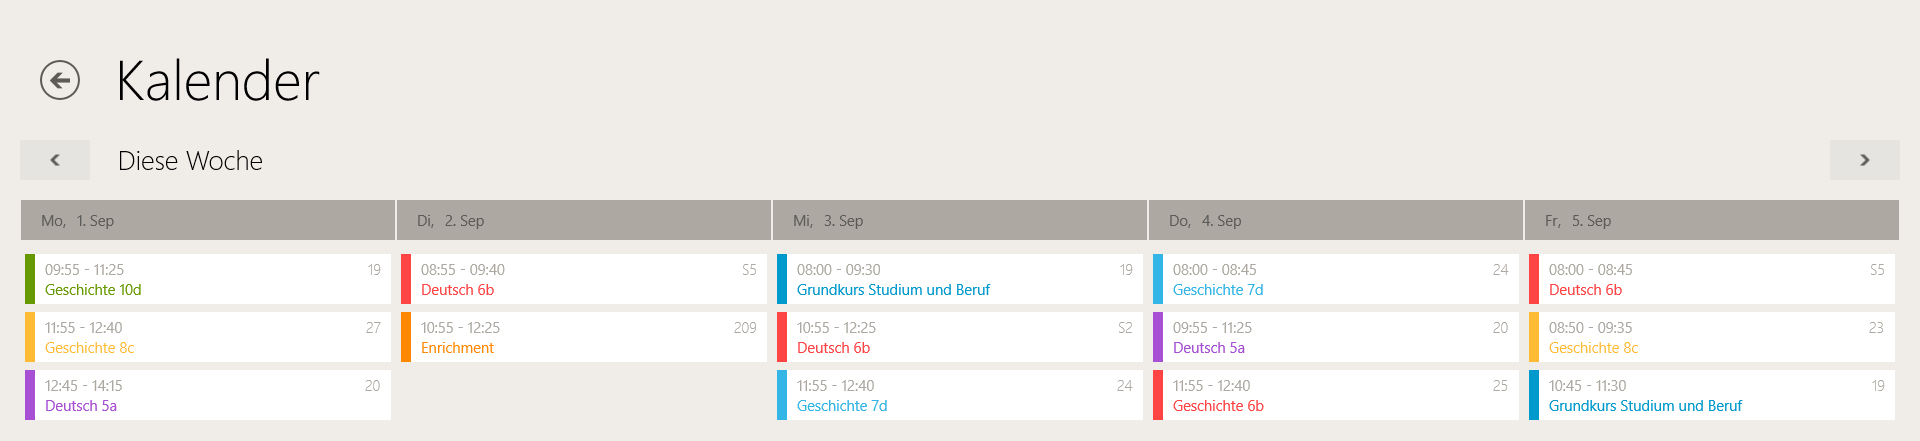 TeacherStudio-Windows-Kalender-Wochenansicht